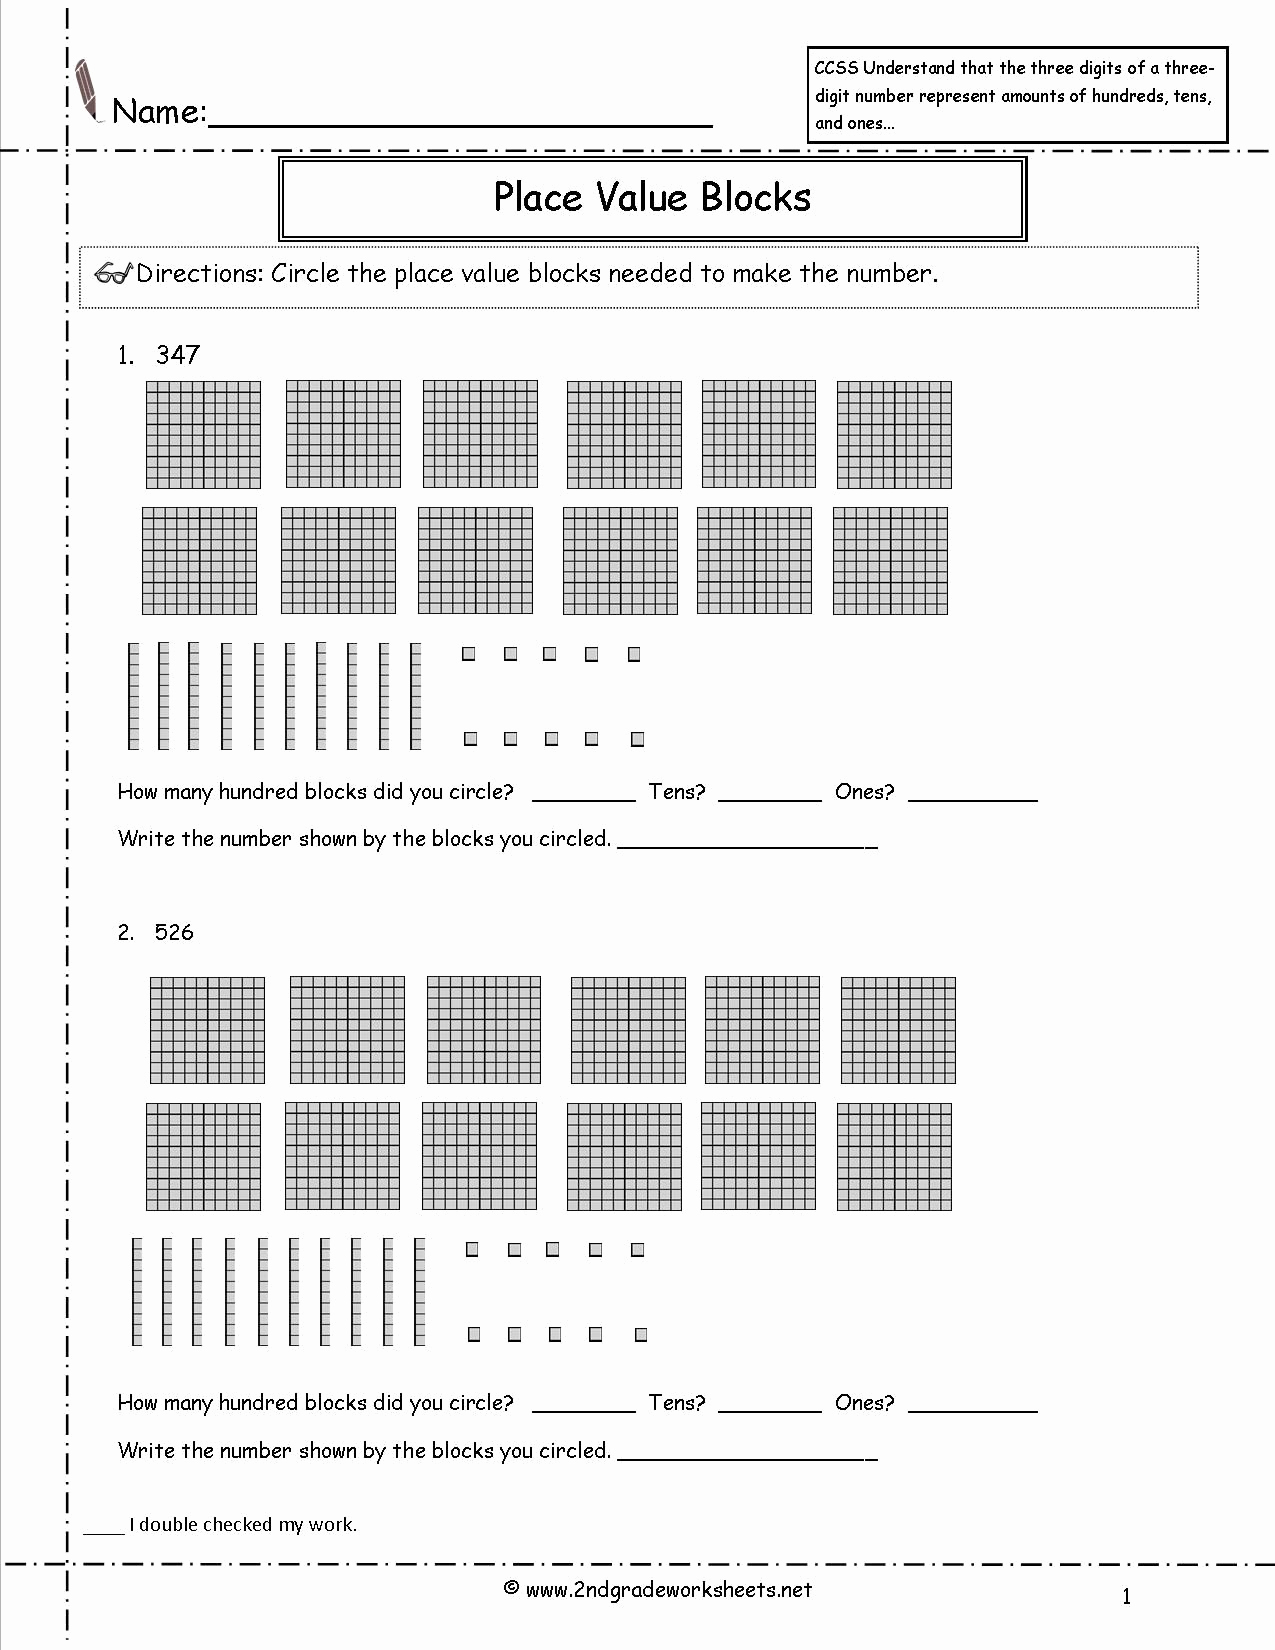 Common Core Worksheets Place Value Awesome 2nd Grade Math Mon Core State Standards Worksheets